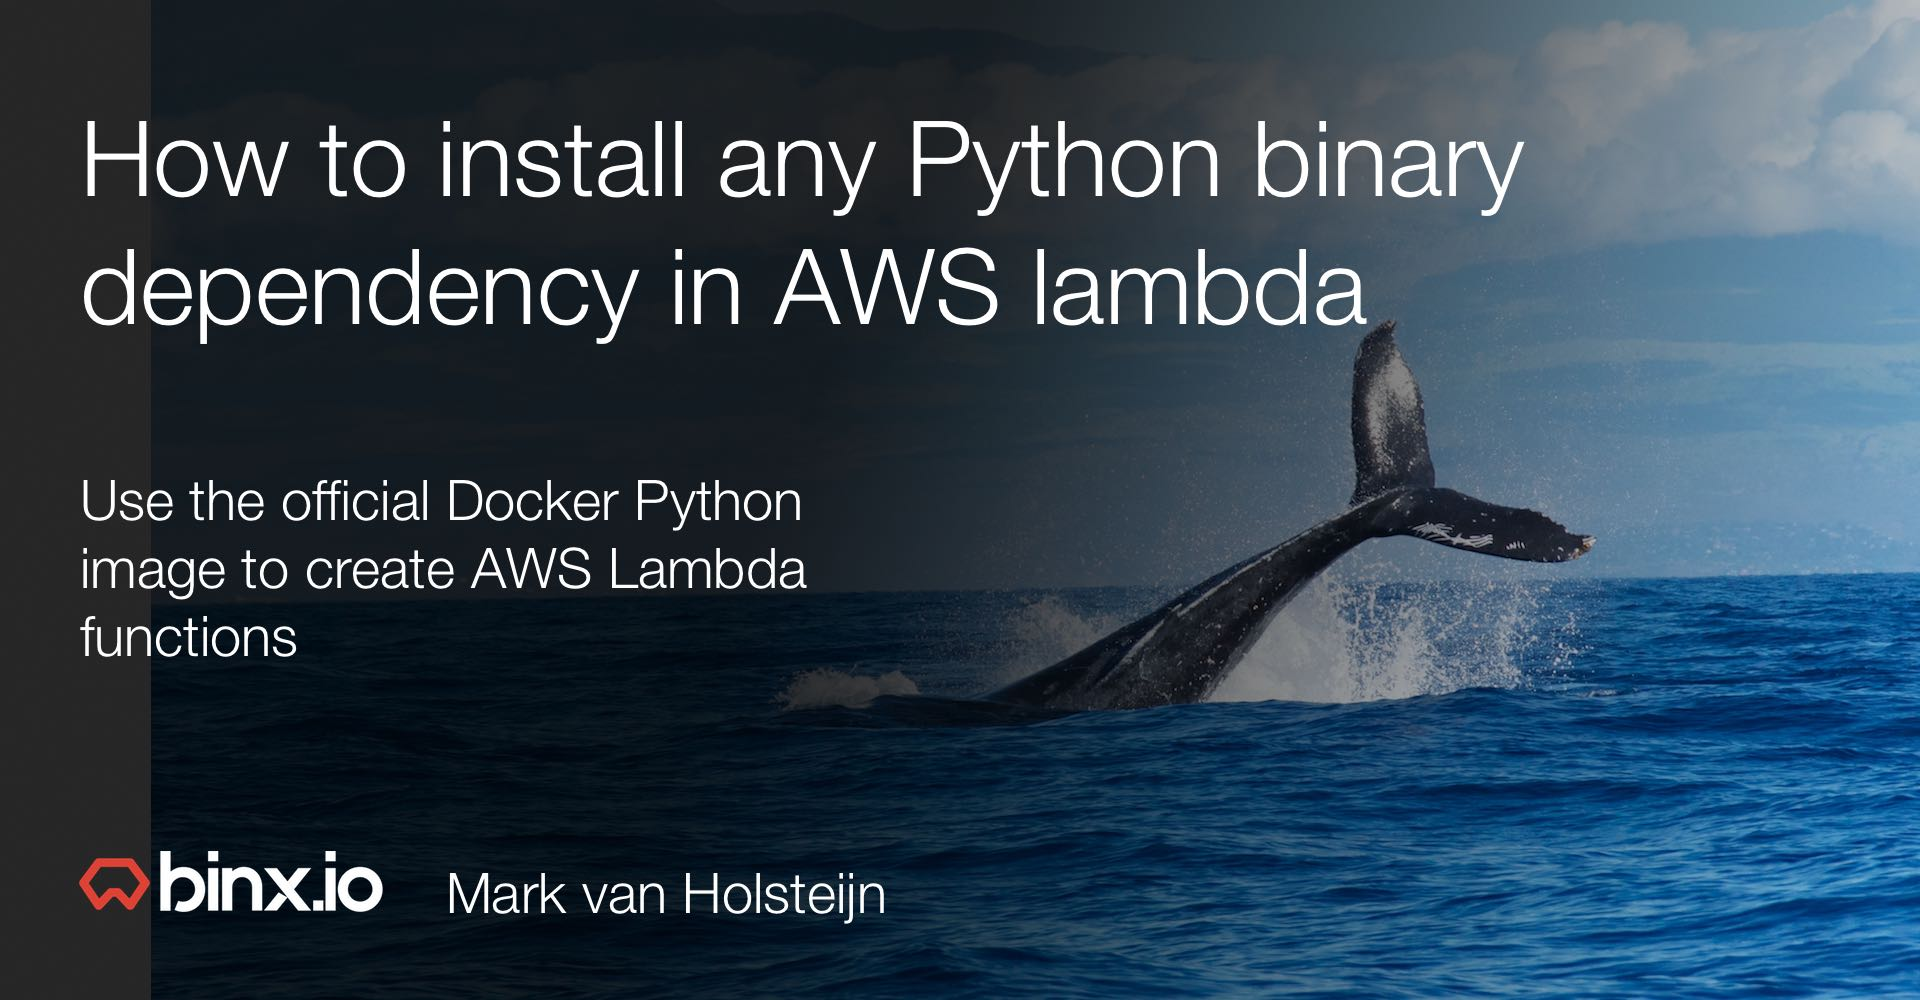 How to install any Python binary dependency in AWS lambda